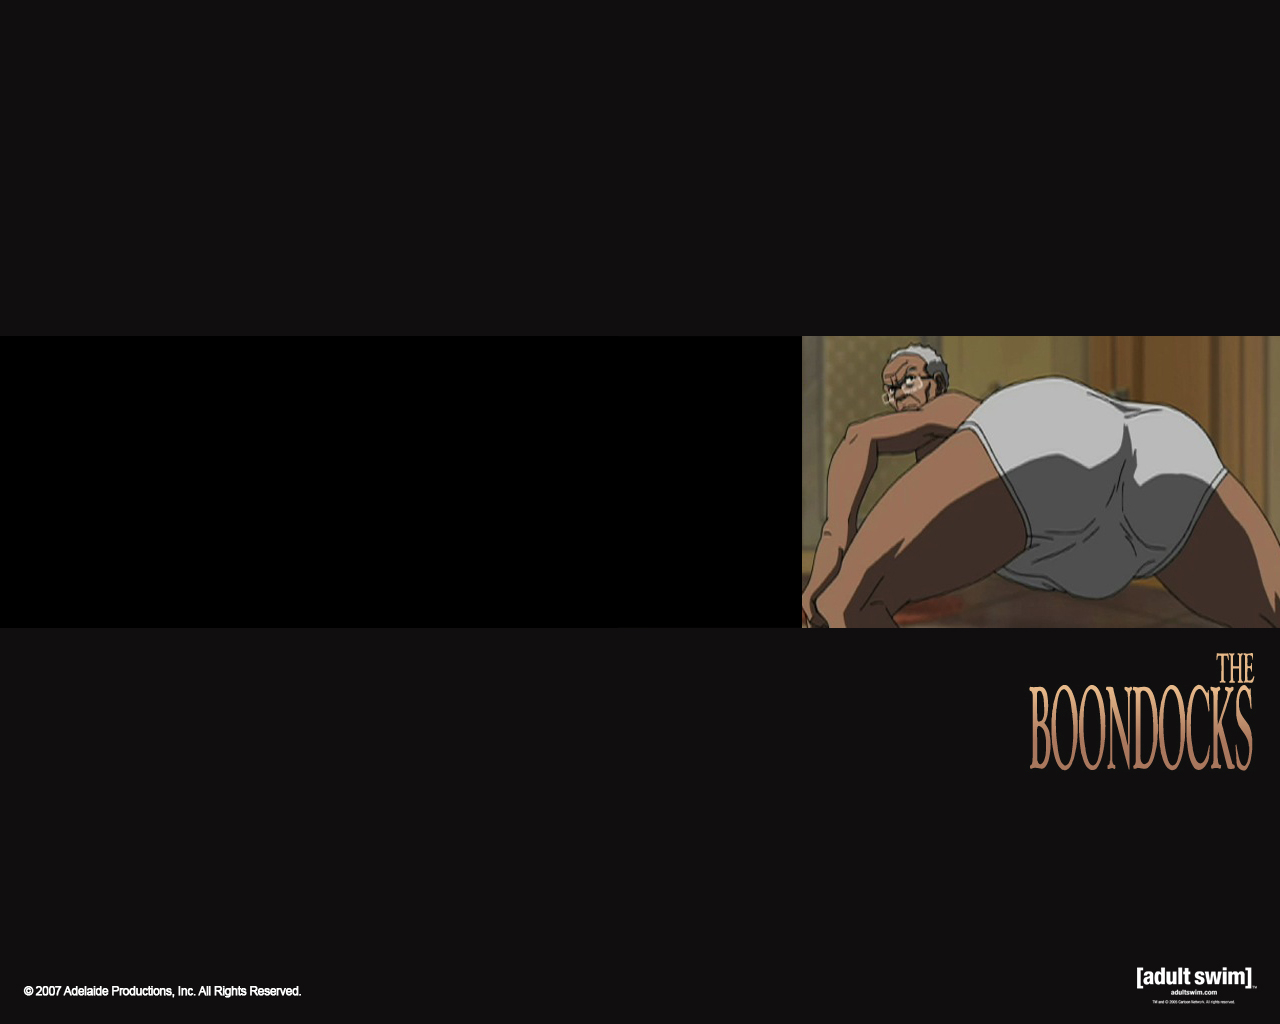 The Boondocks Wallpaper   20013102 1280x1024 Desktop Download 1280x1024